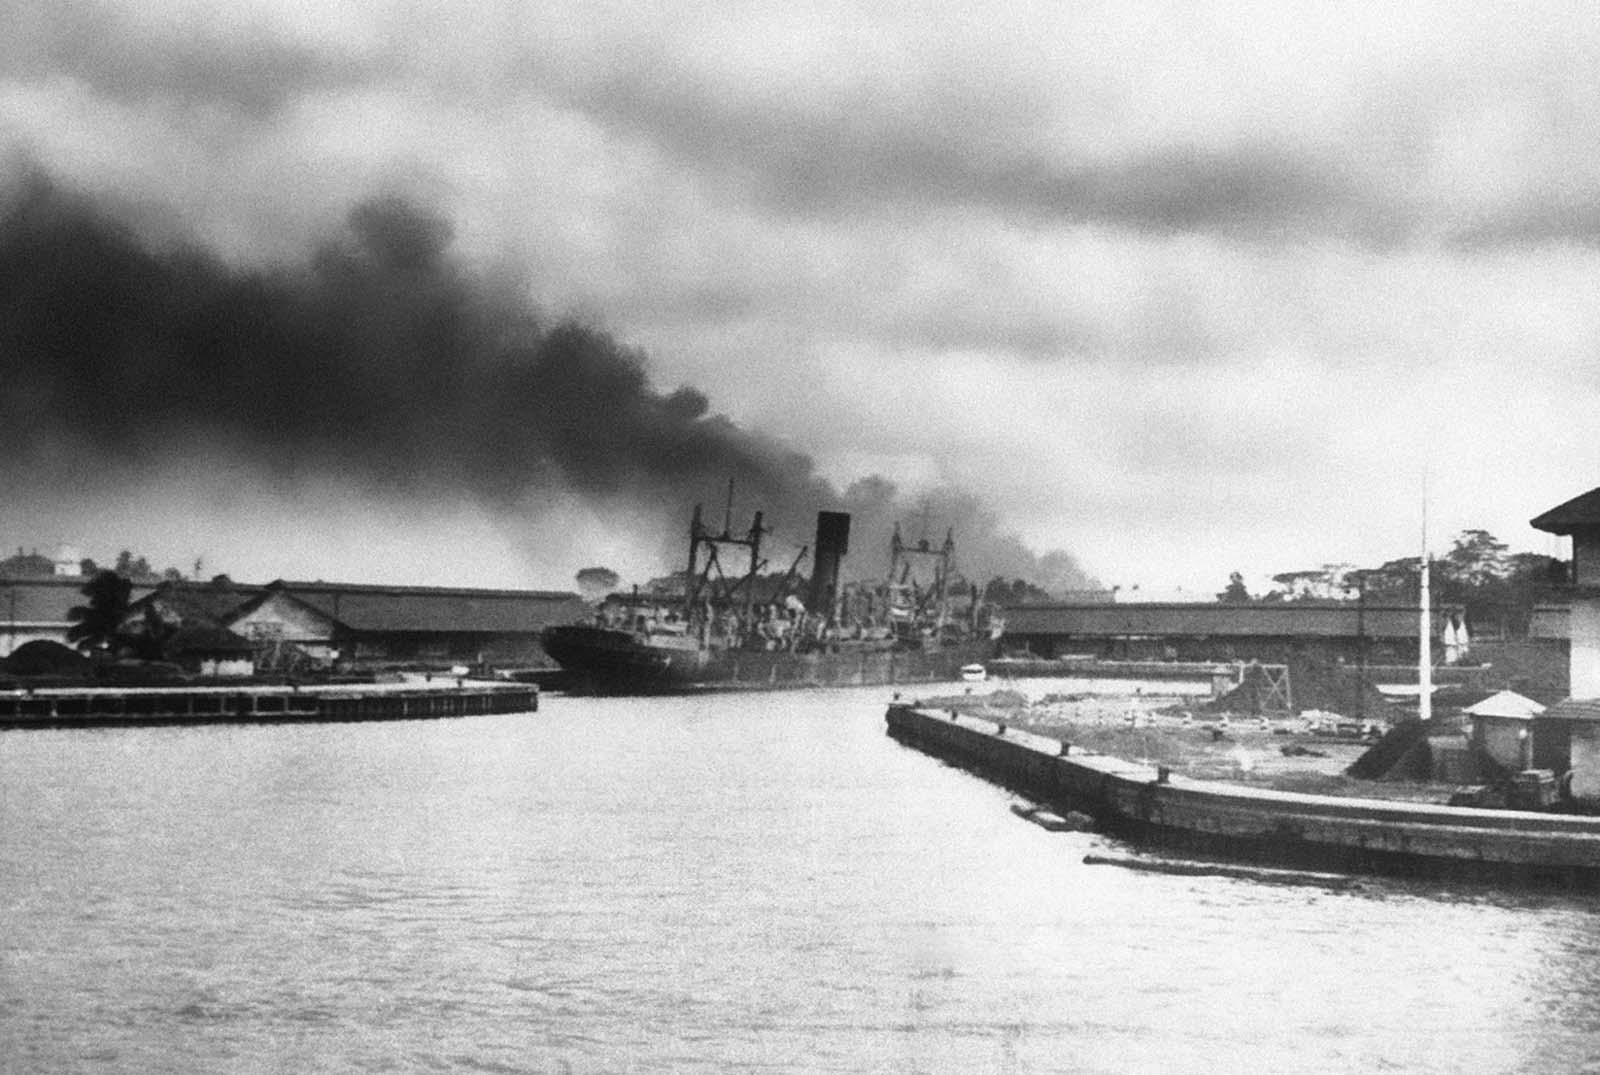 A large freighter settles slowly after being hit by Japanese bombs alongside of one of Singapore's docks on February 12, 1942. Smoke from other struck objectives billows over the waterfront in this photo by C. Yates McDaniel, Associated Press correspondent, who was among the last to leave the besieged port on February 12. The next day his ship was bombed and he reached safety after further harrowing experience.